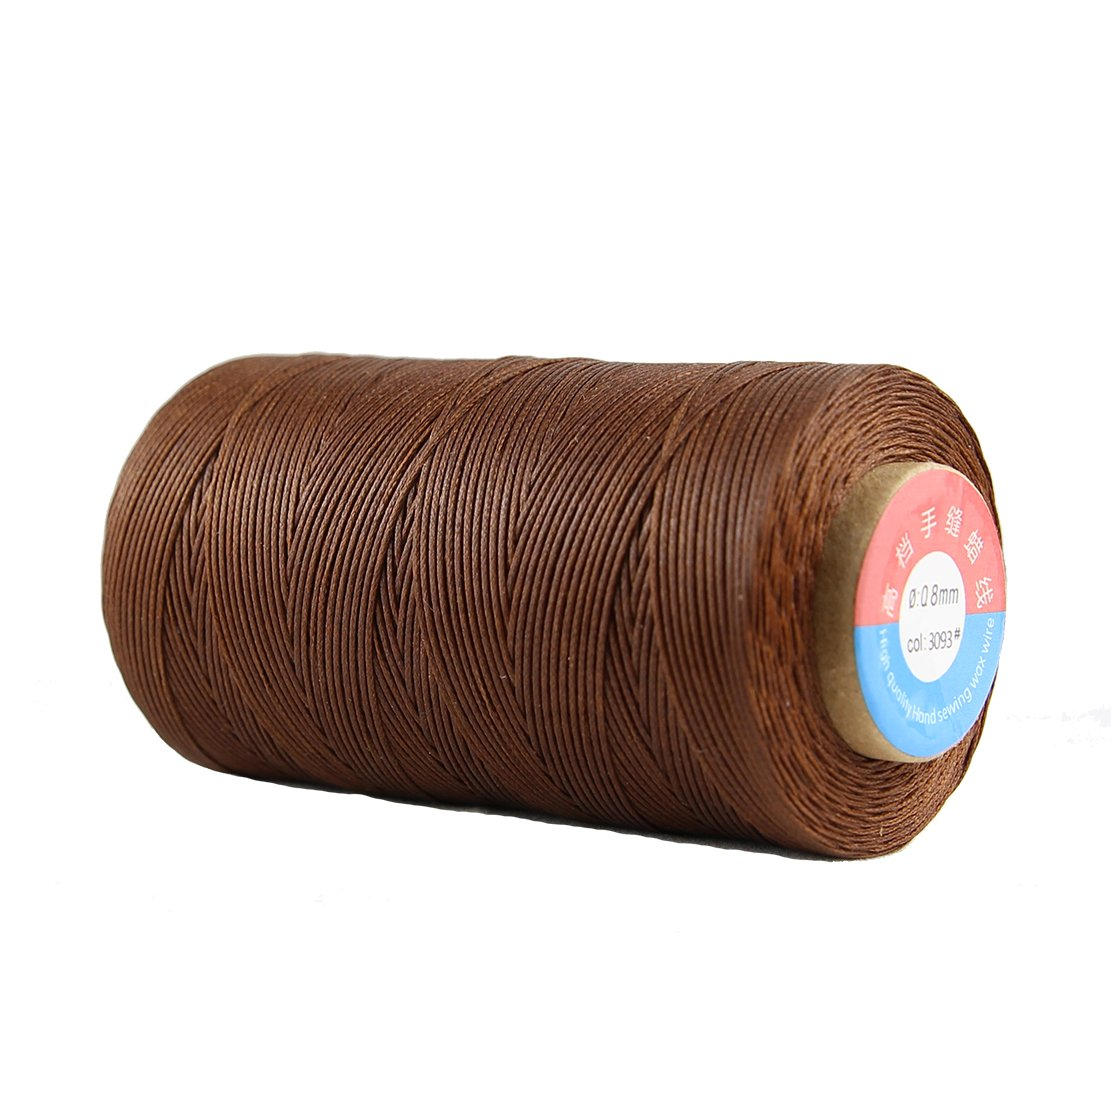 285Yards Leather Thread Waxed Polyester Sewing Thread 150D 16Ply 0.8mm Diameter for Leather Stitching Craft HONGLI